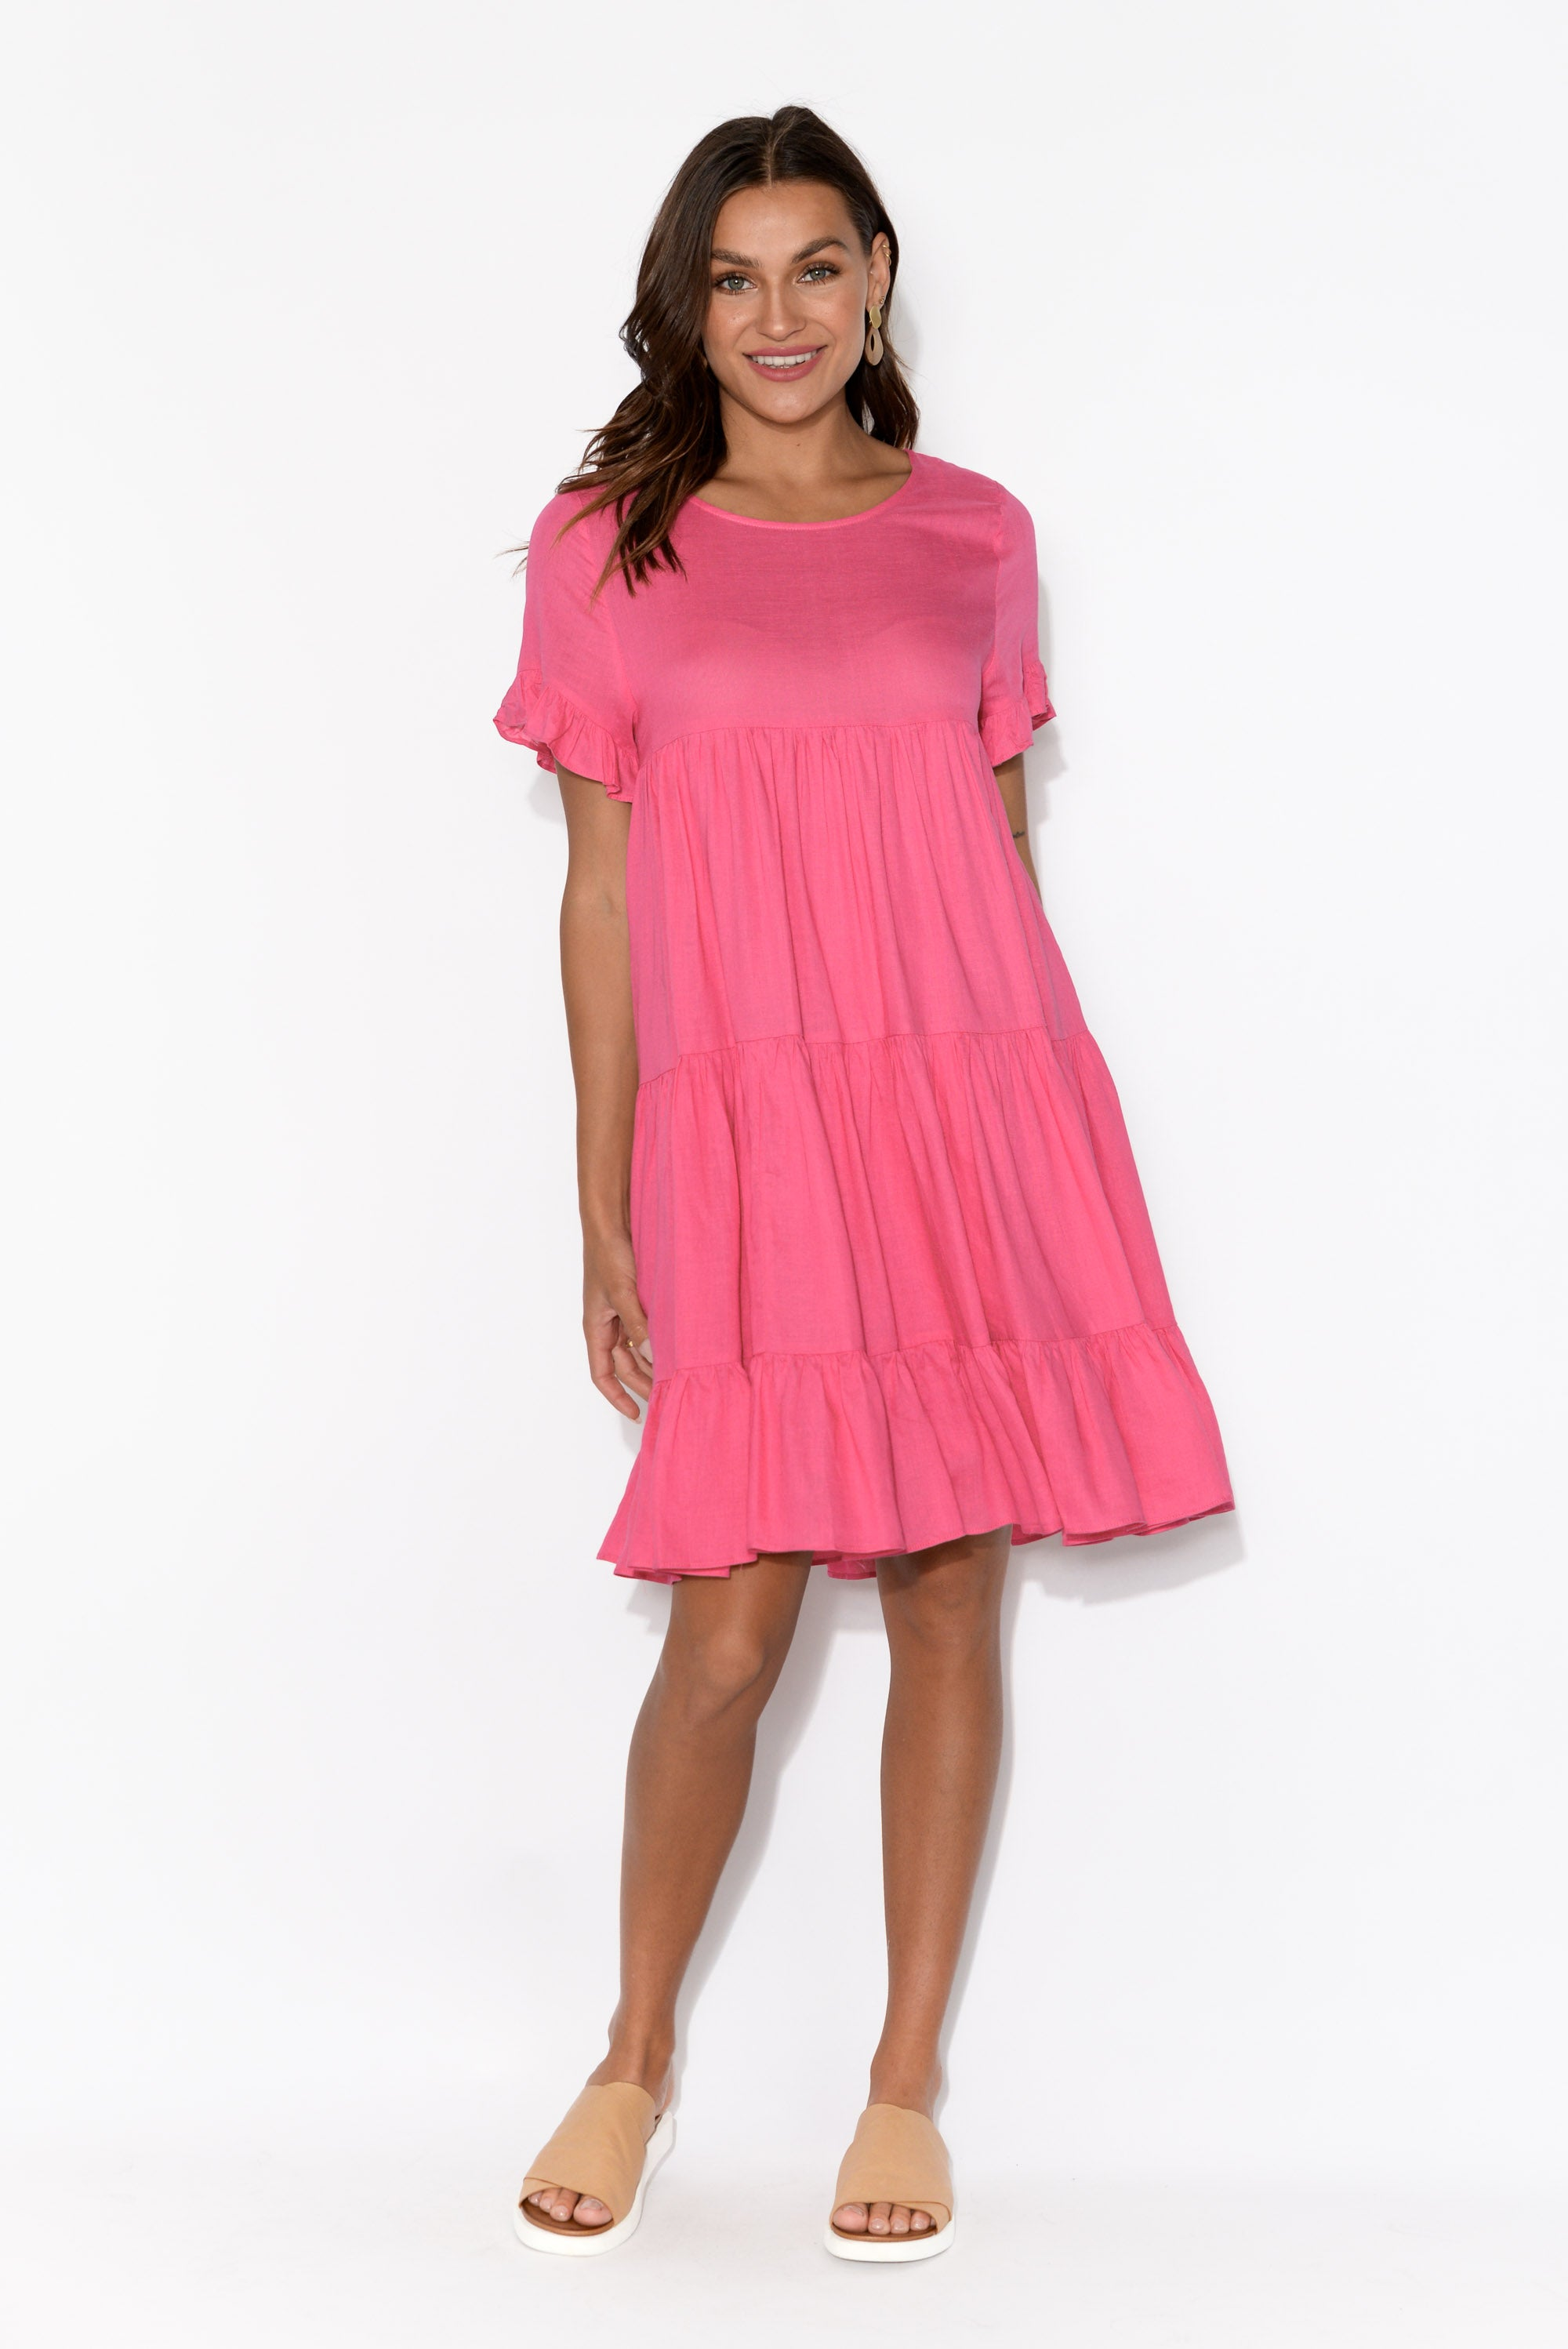 Sia Pink Tiered Dress